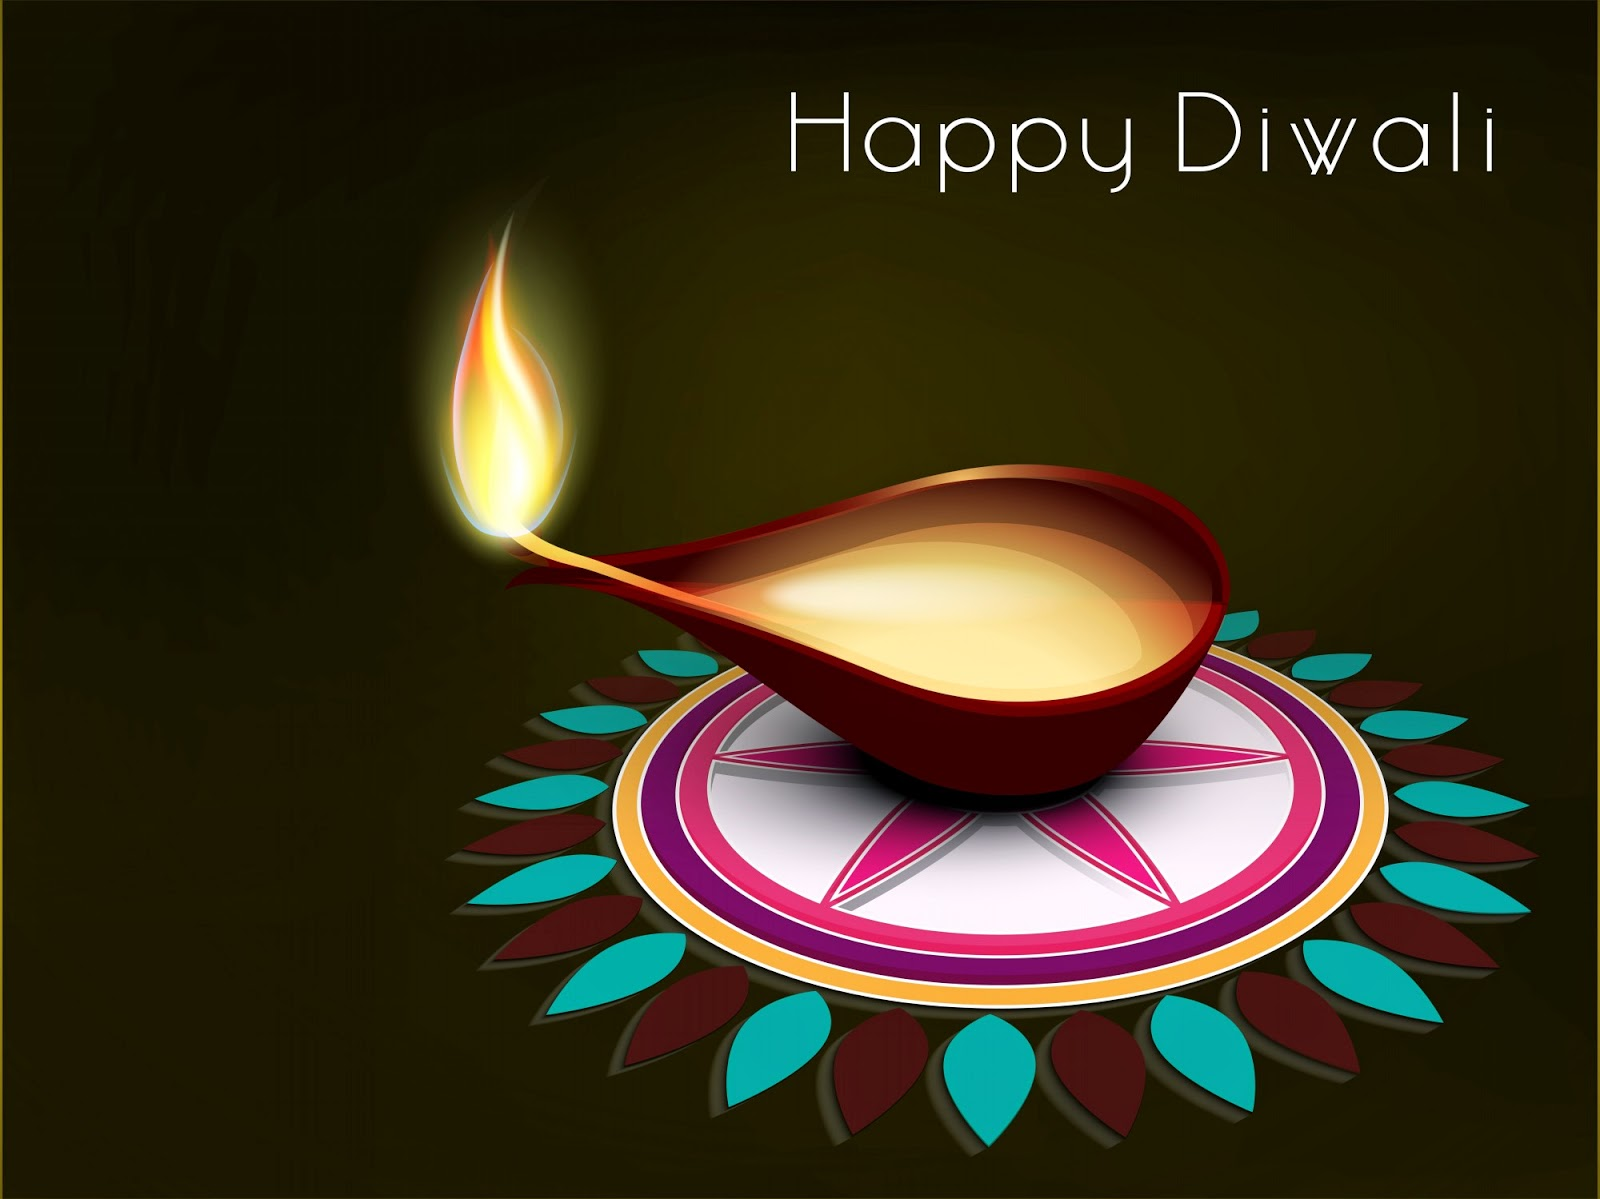 Happy Diwali 2018 Images, Pictures, Photos, Wallpapers